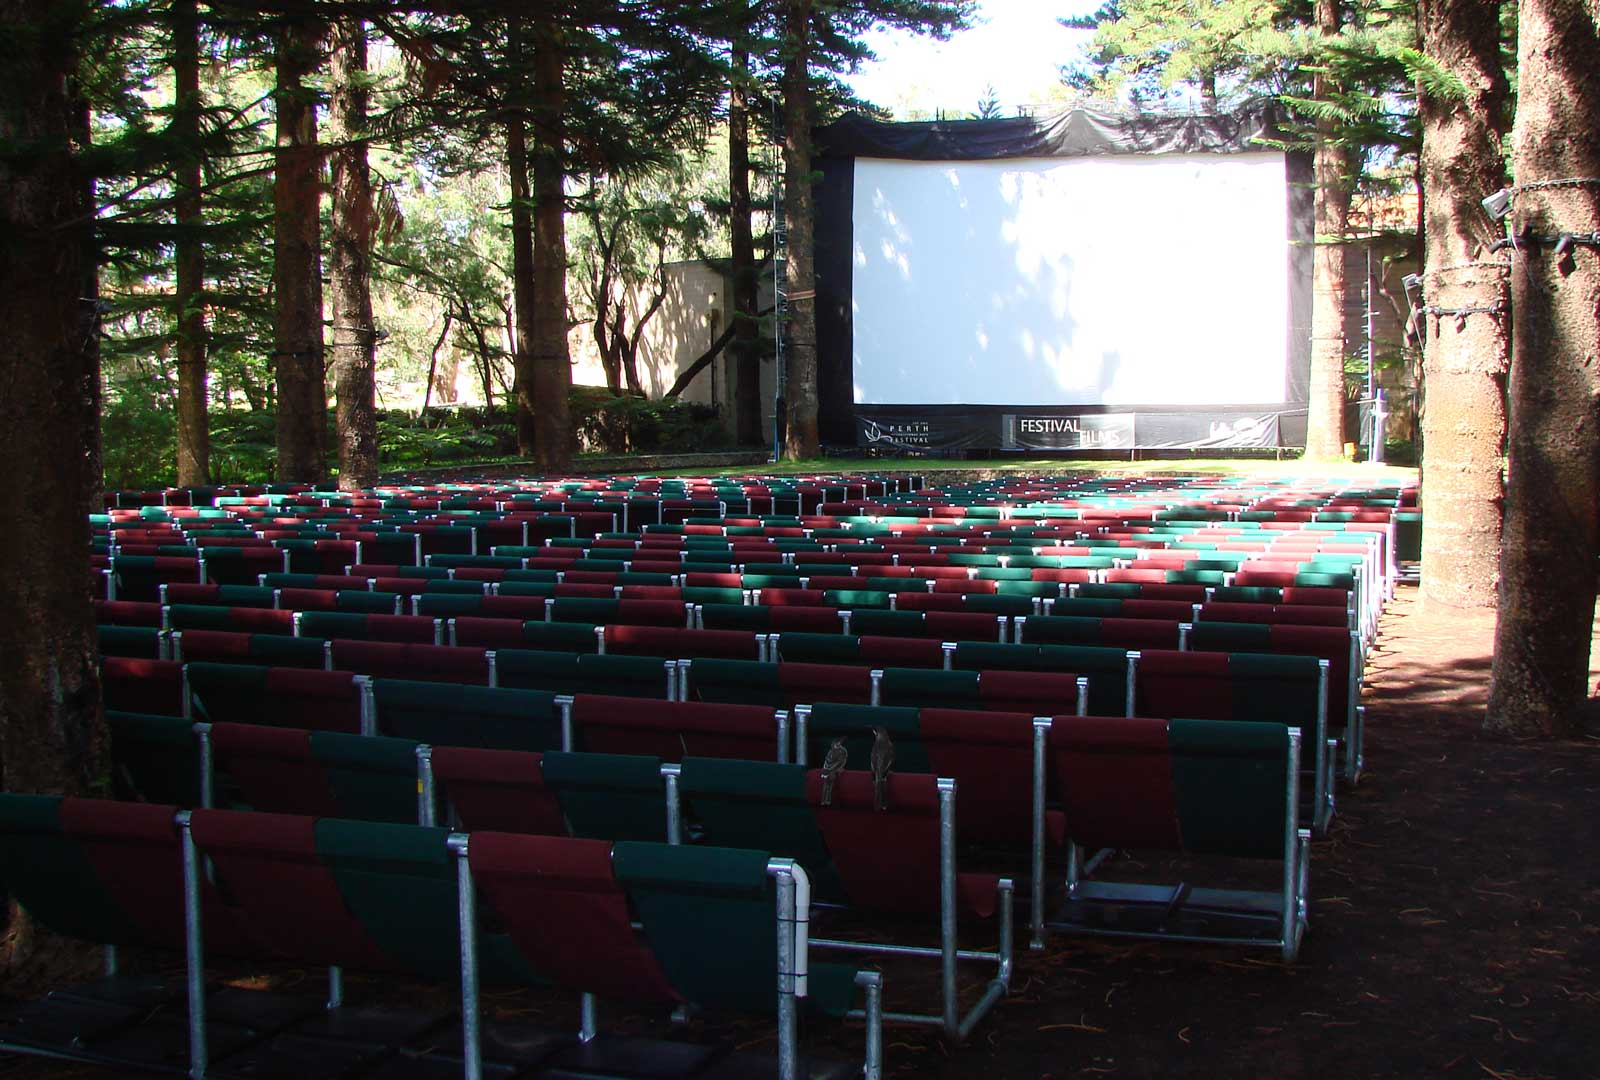 Feature Seating